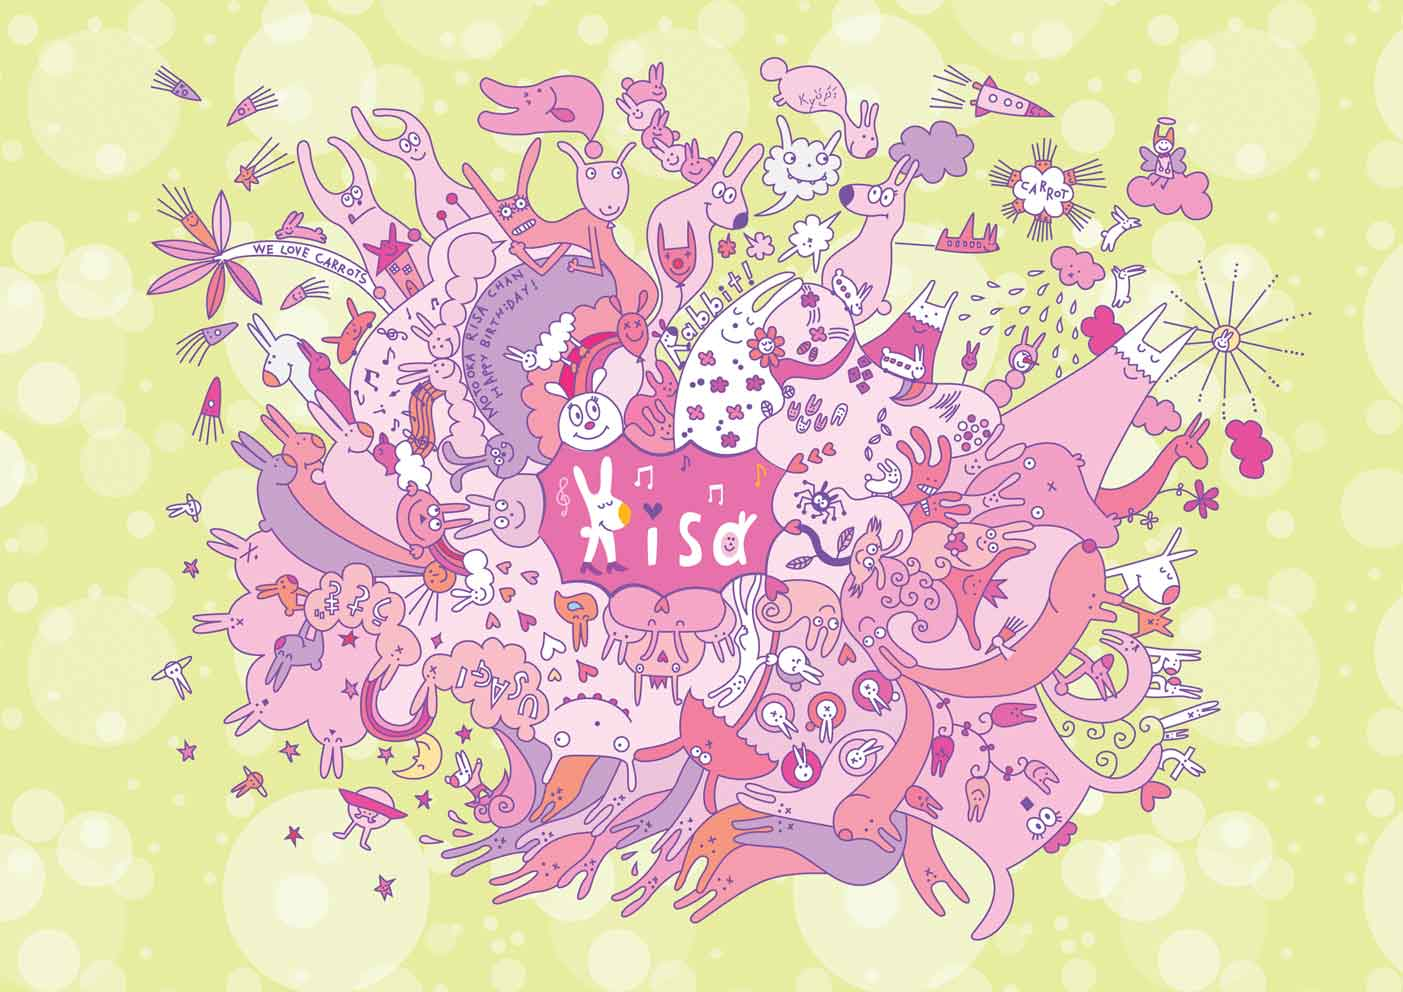 For Risa